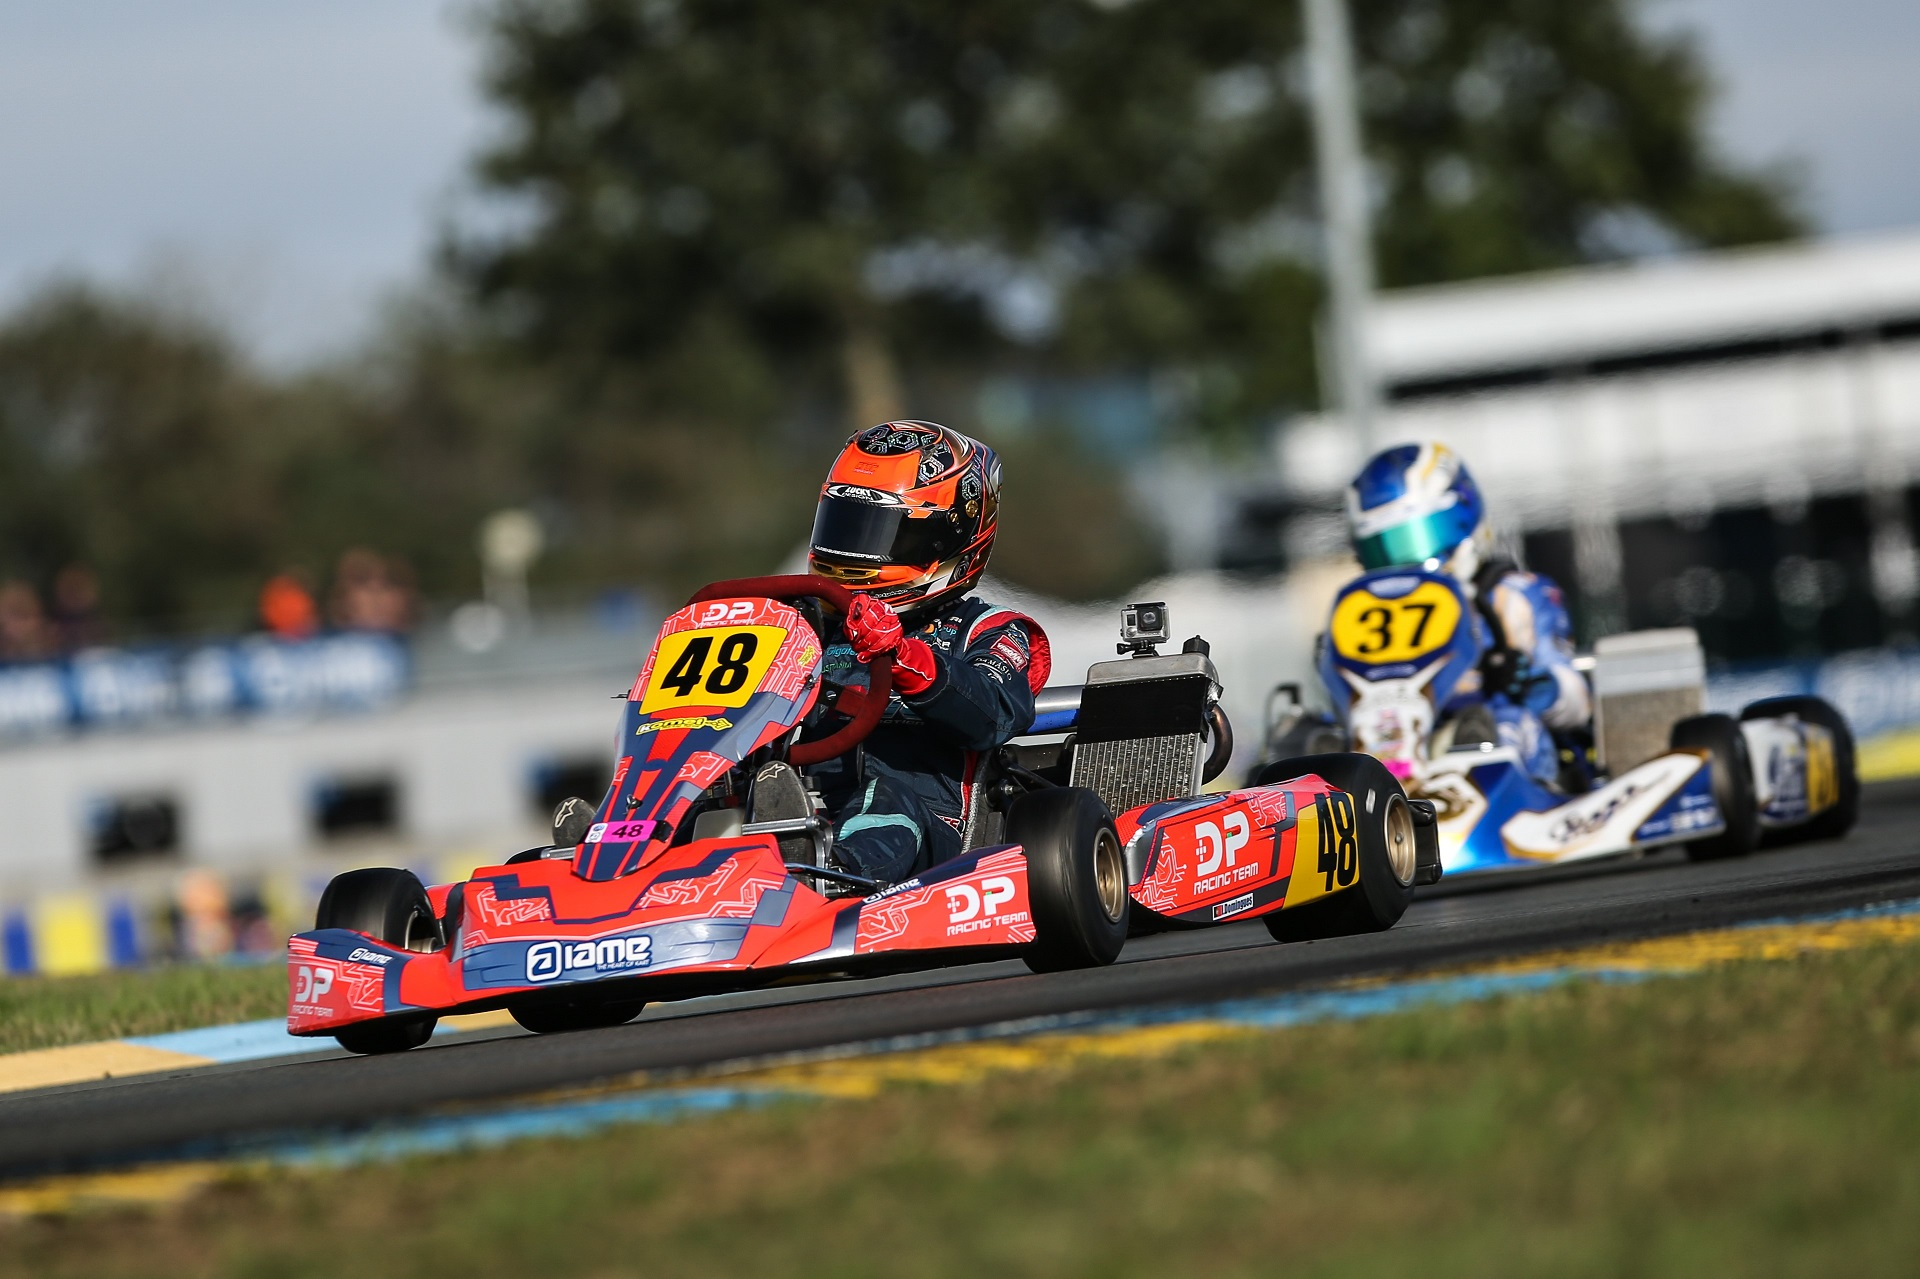 Ivan Domingues vence Final C e recupera 25 lugares na Final B do Mundial Iame Júnior